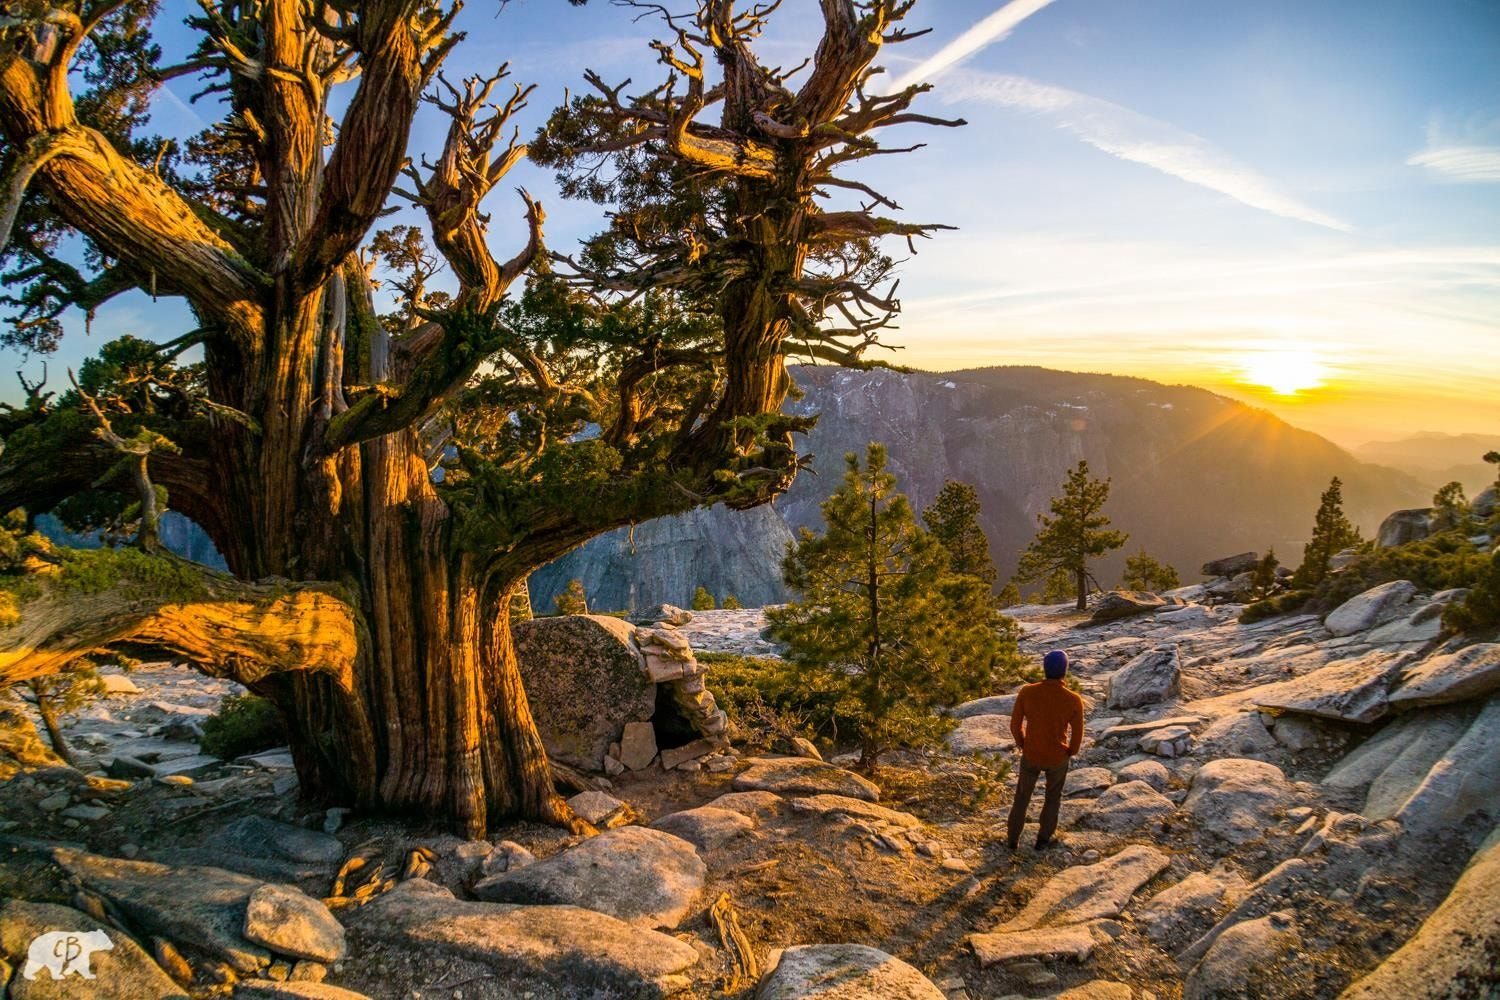 Yosemite Sunrise - Not a bad place to take root.  www.chrisburkard.com